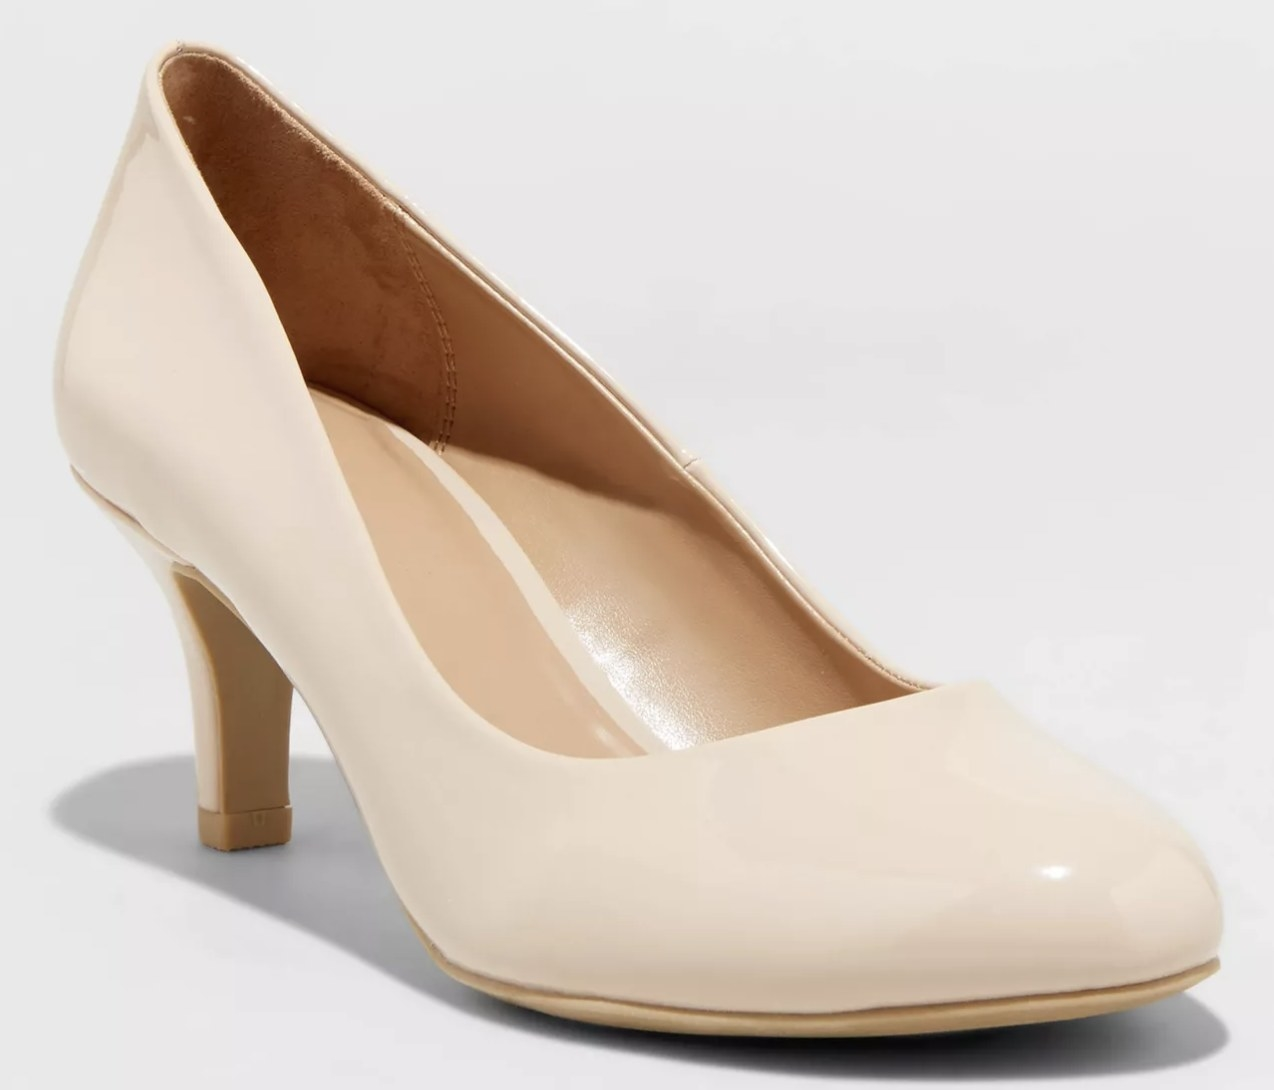 The shoe in taupe